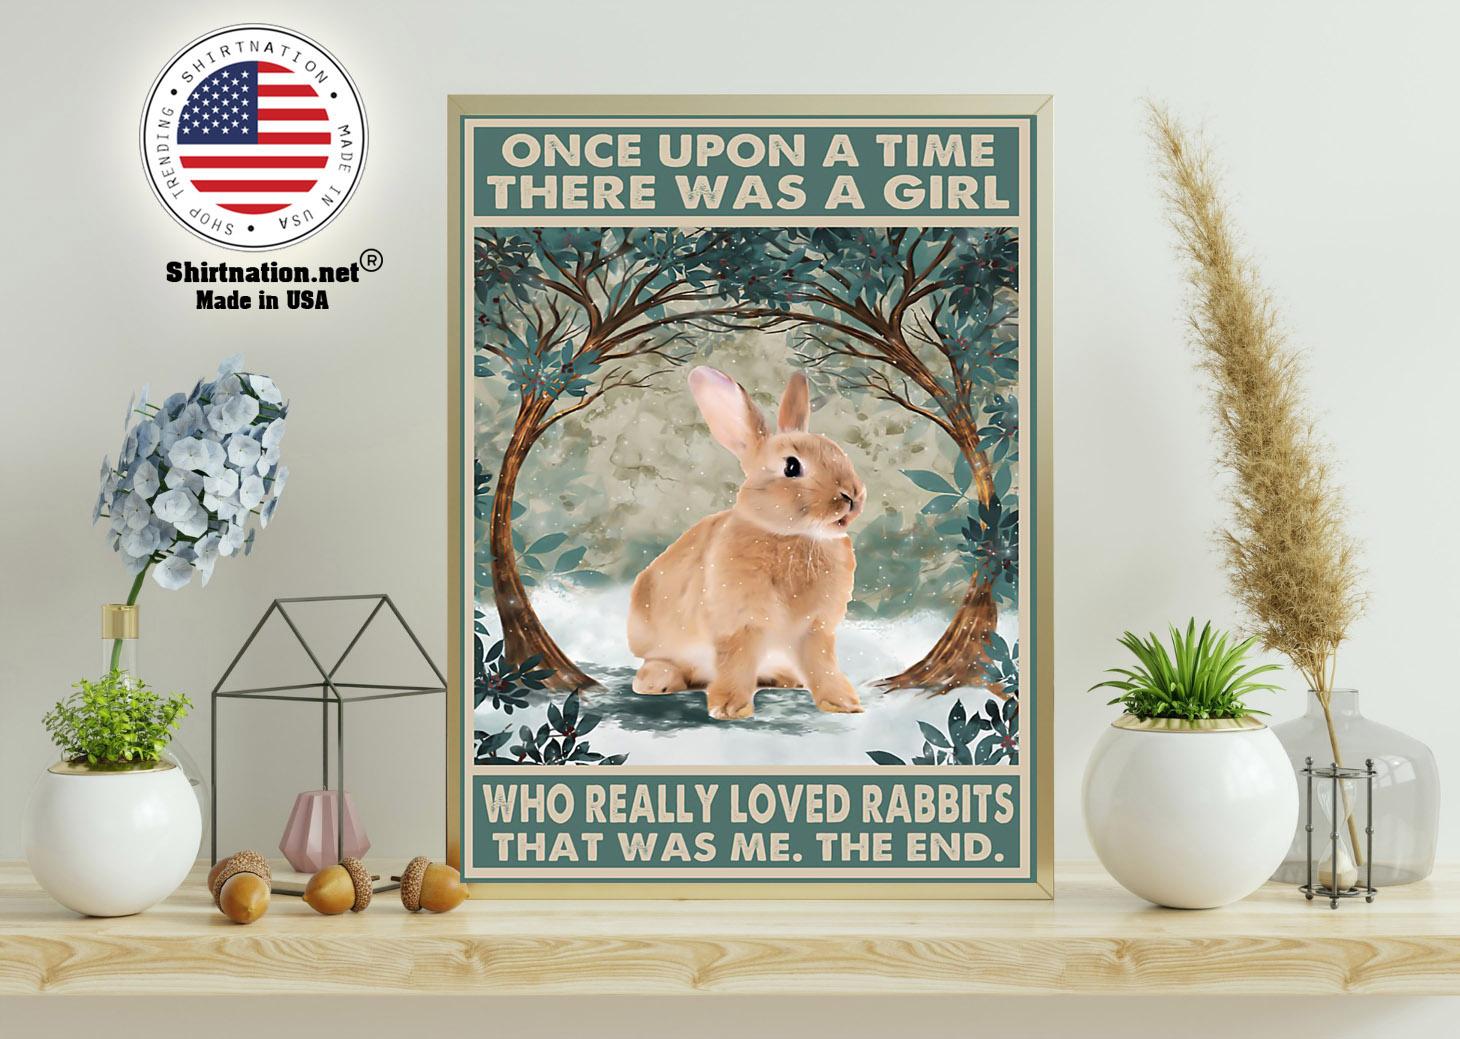 Once upon a time there was a girl who really loved rabbits poster